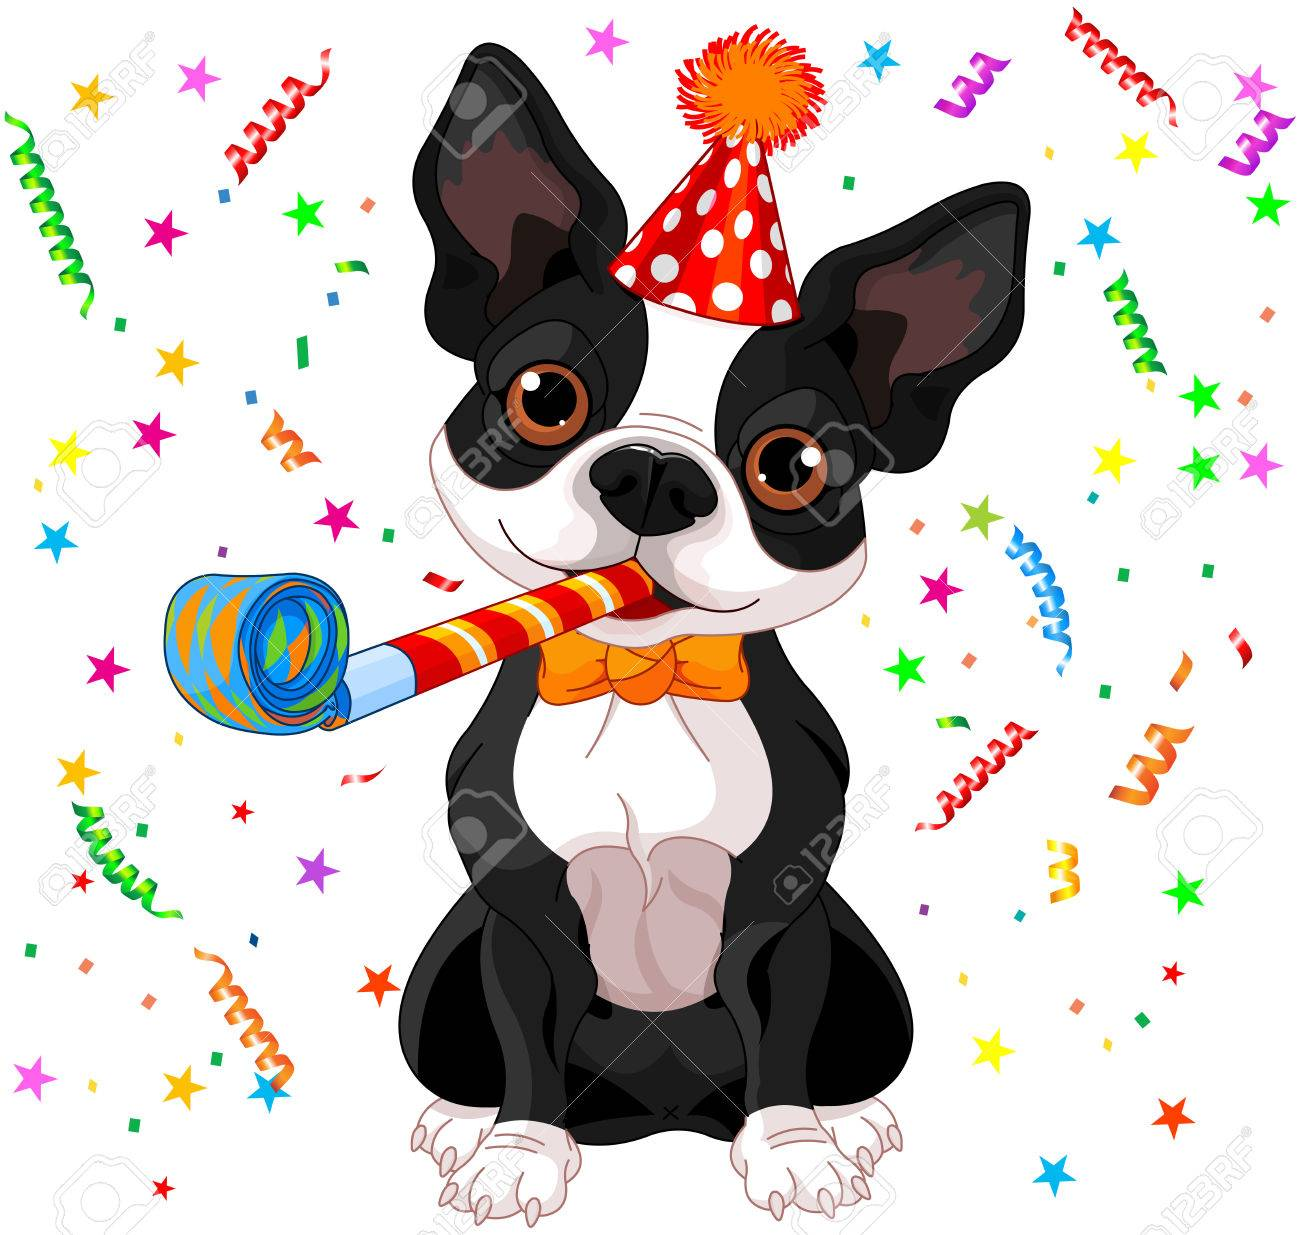 Rester seul à la maison en 5 étapes - Page 2 35588778-illustration-of-cute-boston-terrier-celebrating